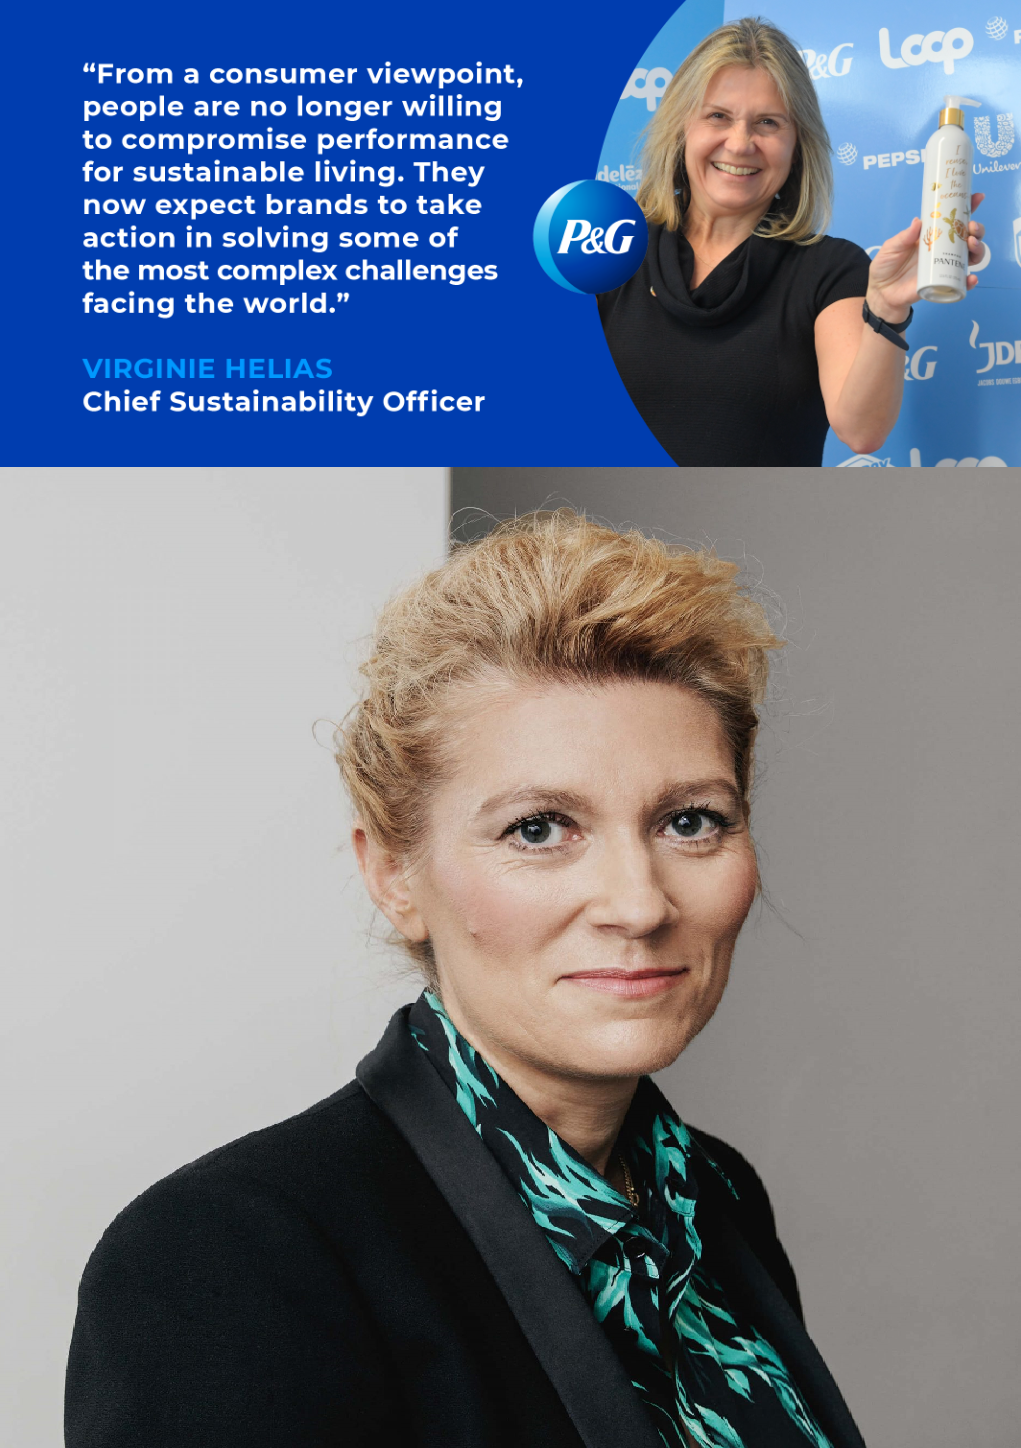 Virginie-Helias-CSO Procter Gamble (top) Marie-Claire Daveau CSO Kering (bottom)